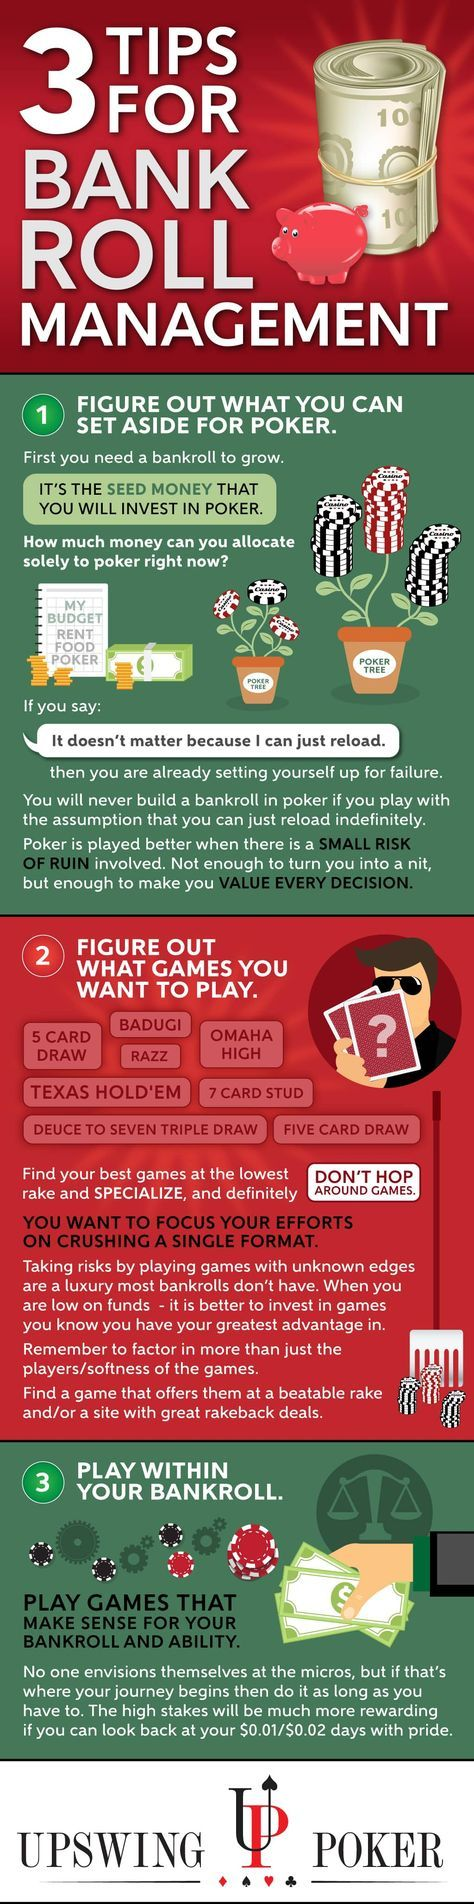 Poker at casino tips